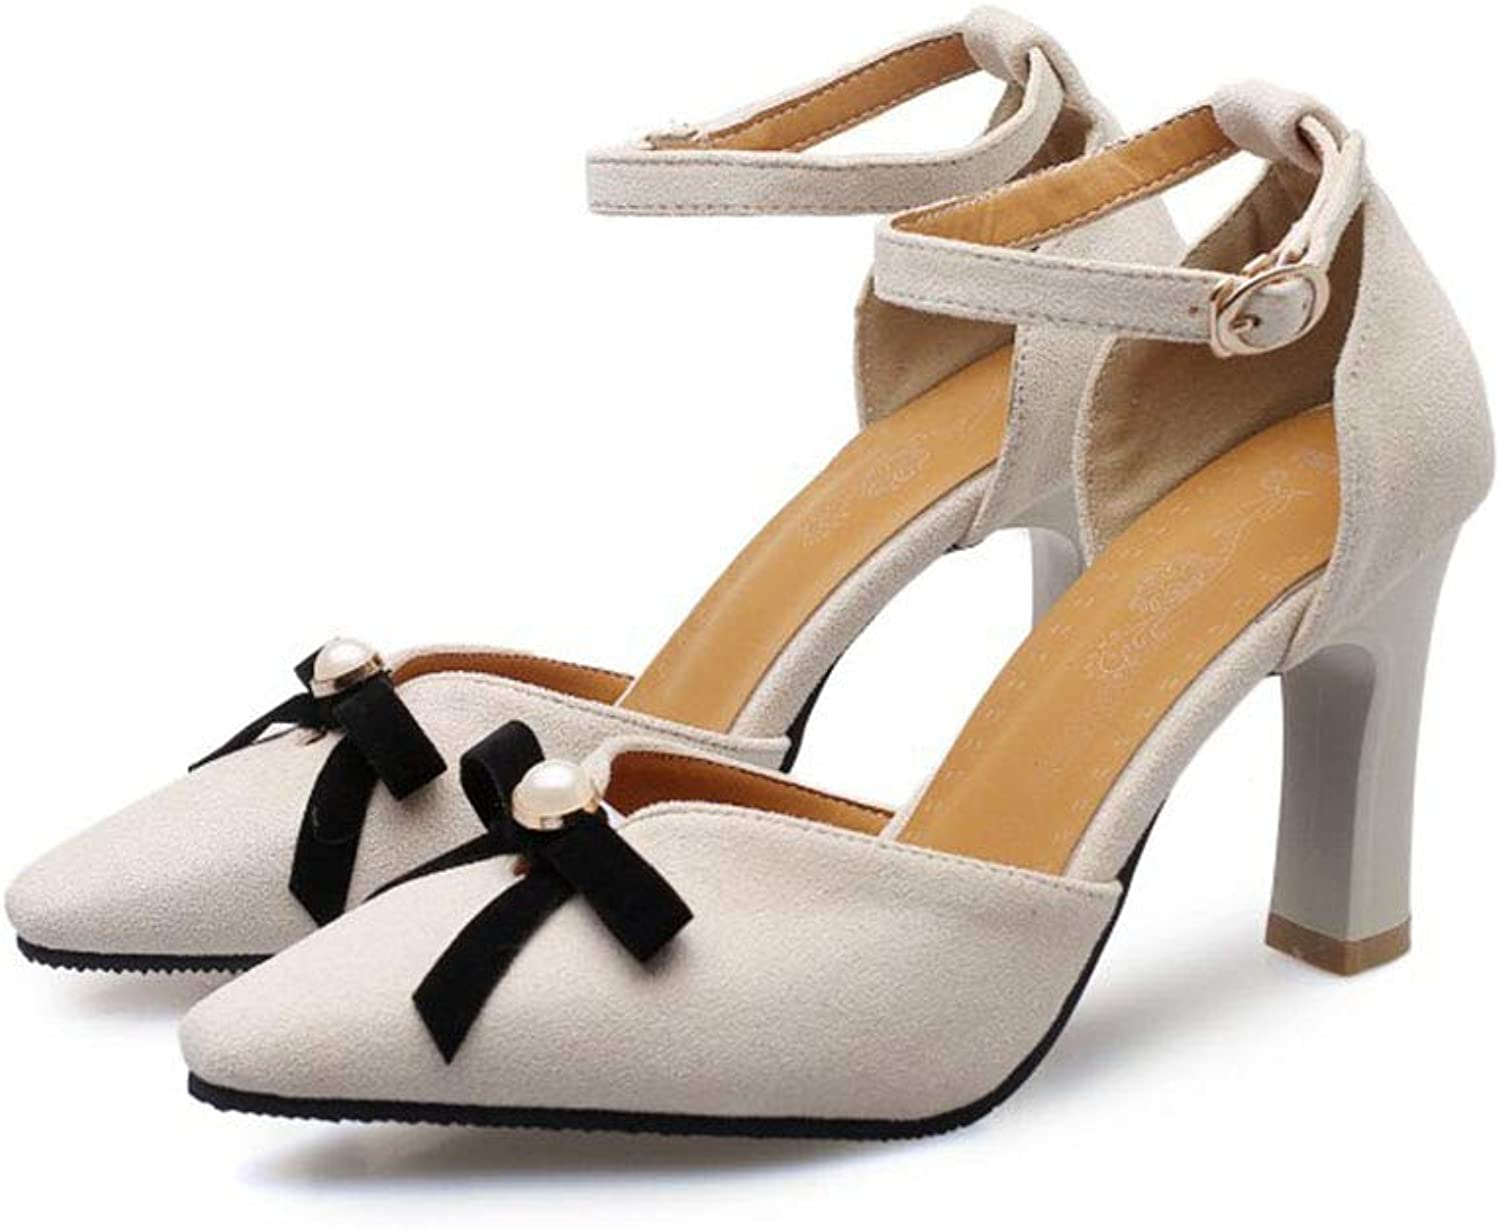 Women's shoes Pointed Artificial PU high Heel Stiletto Sandals Bow Decoration Single shoes Summer